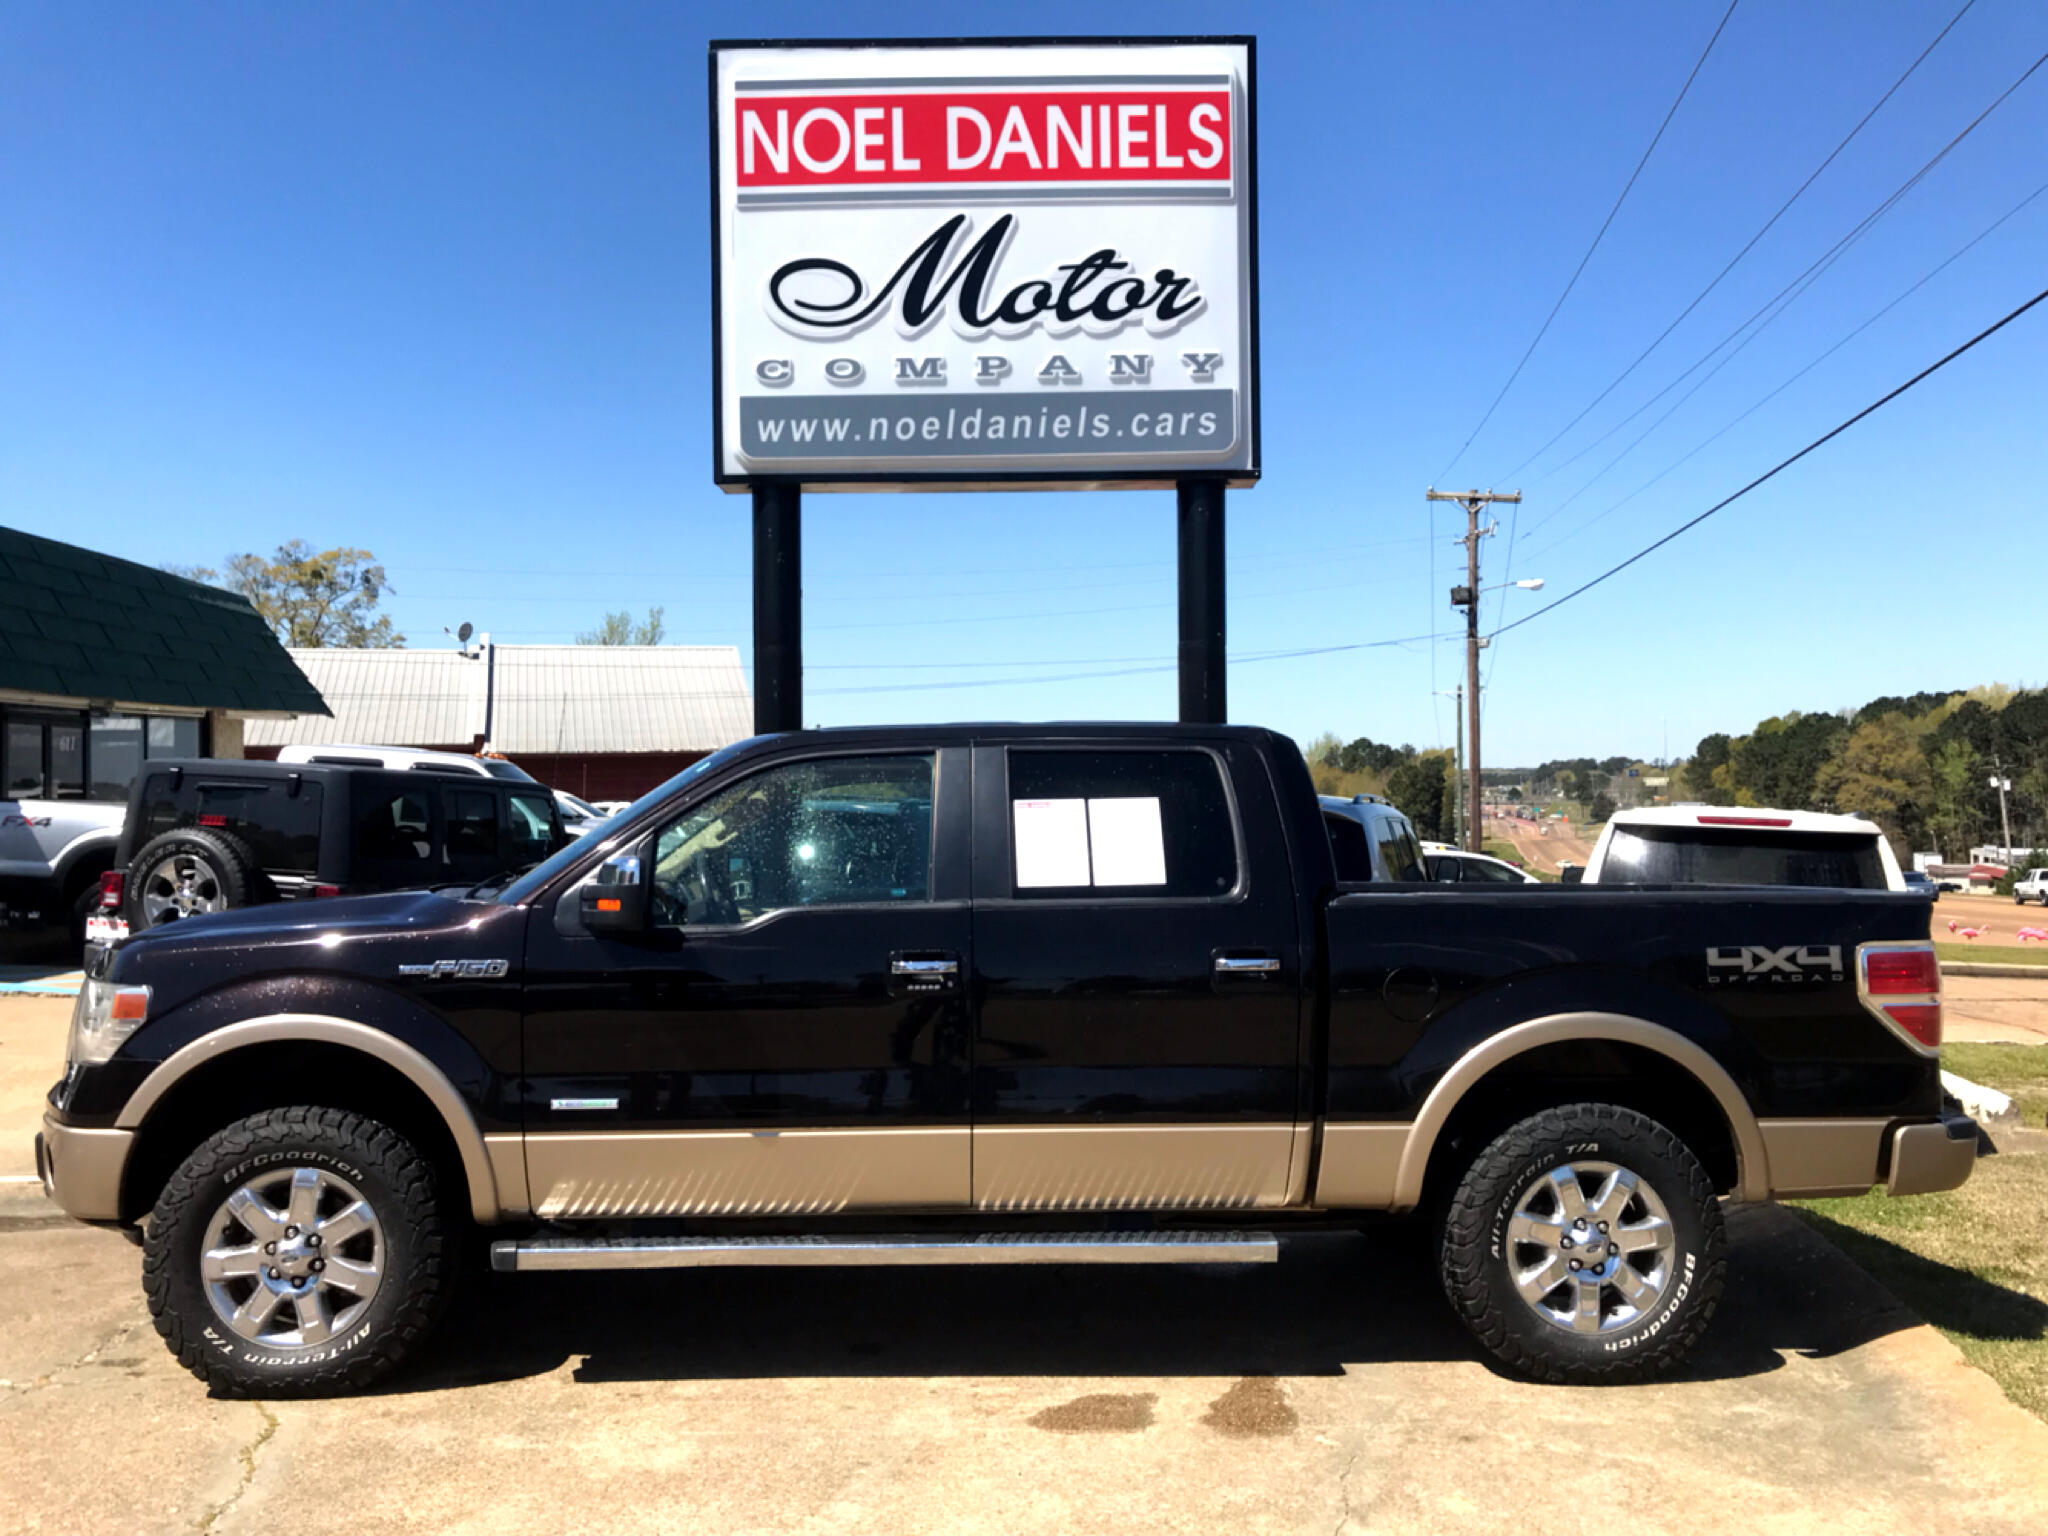 2014 Ford F-150 4WD SuperCrew Lariat 3.5L Ecoboost